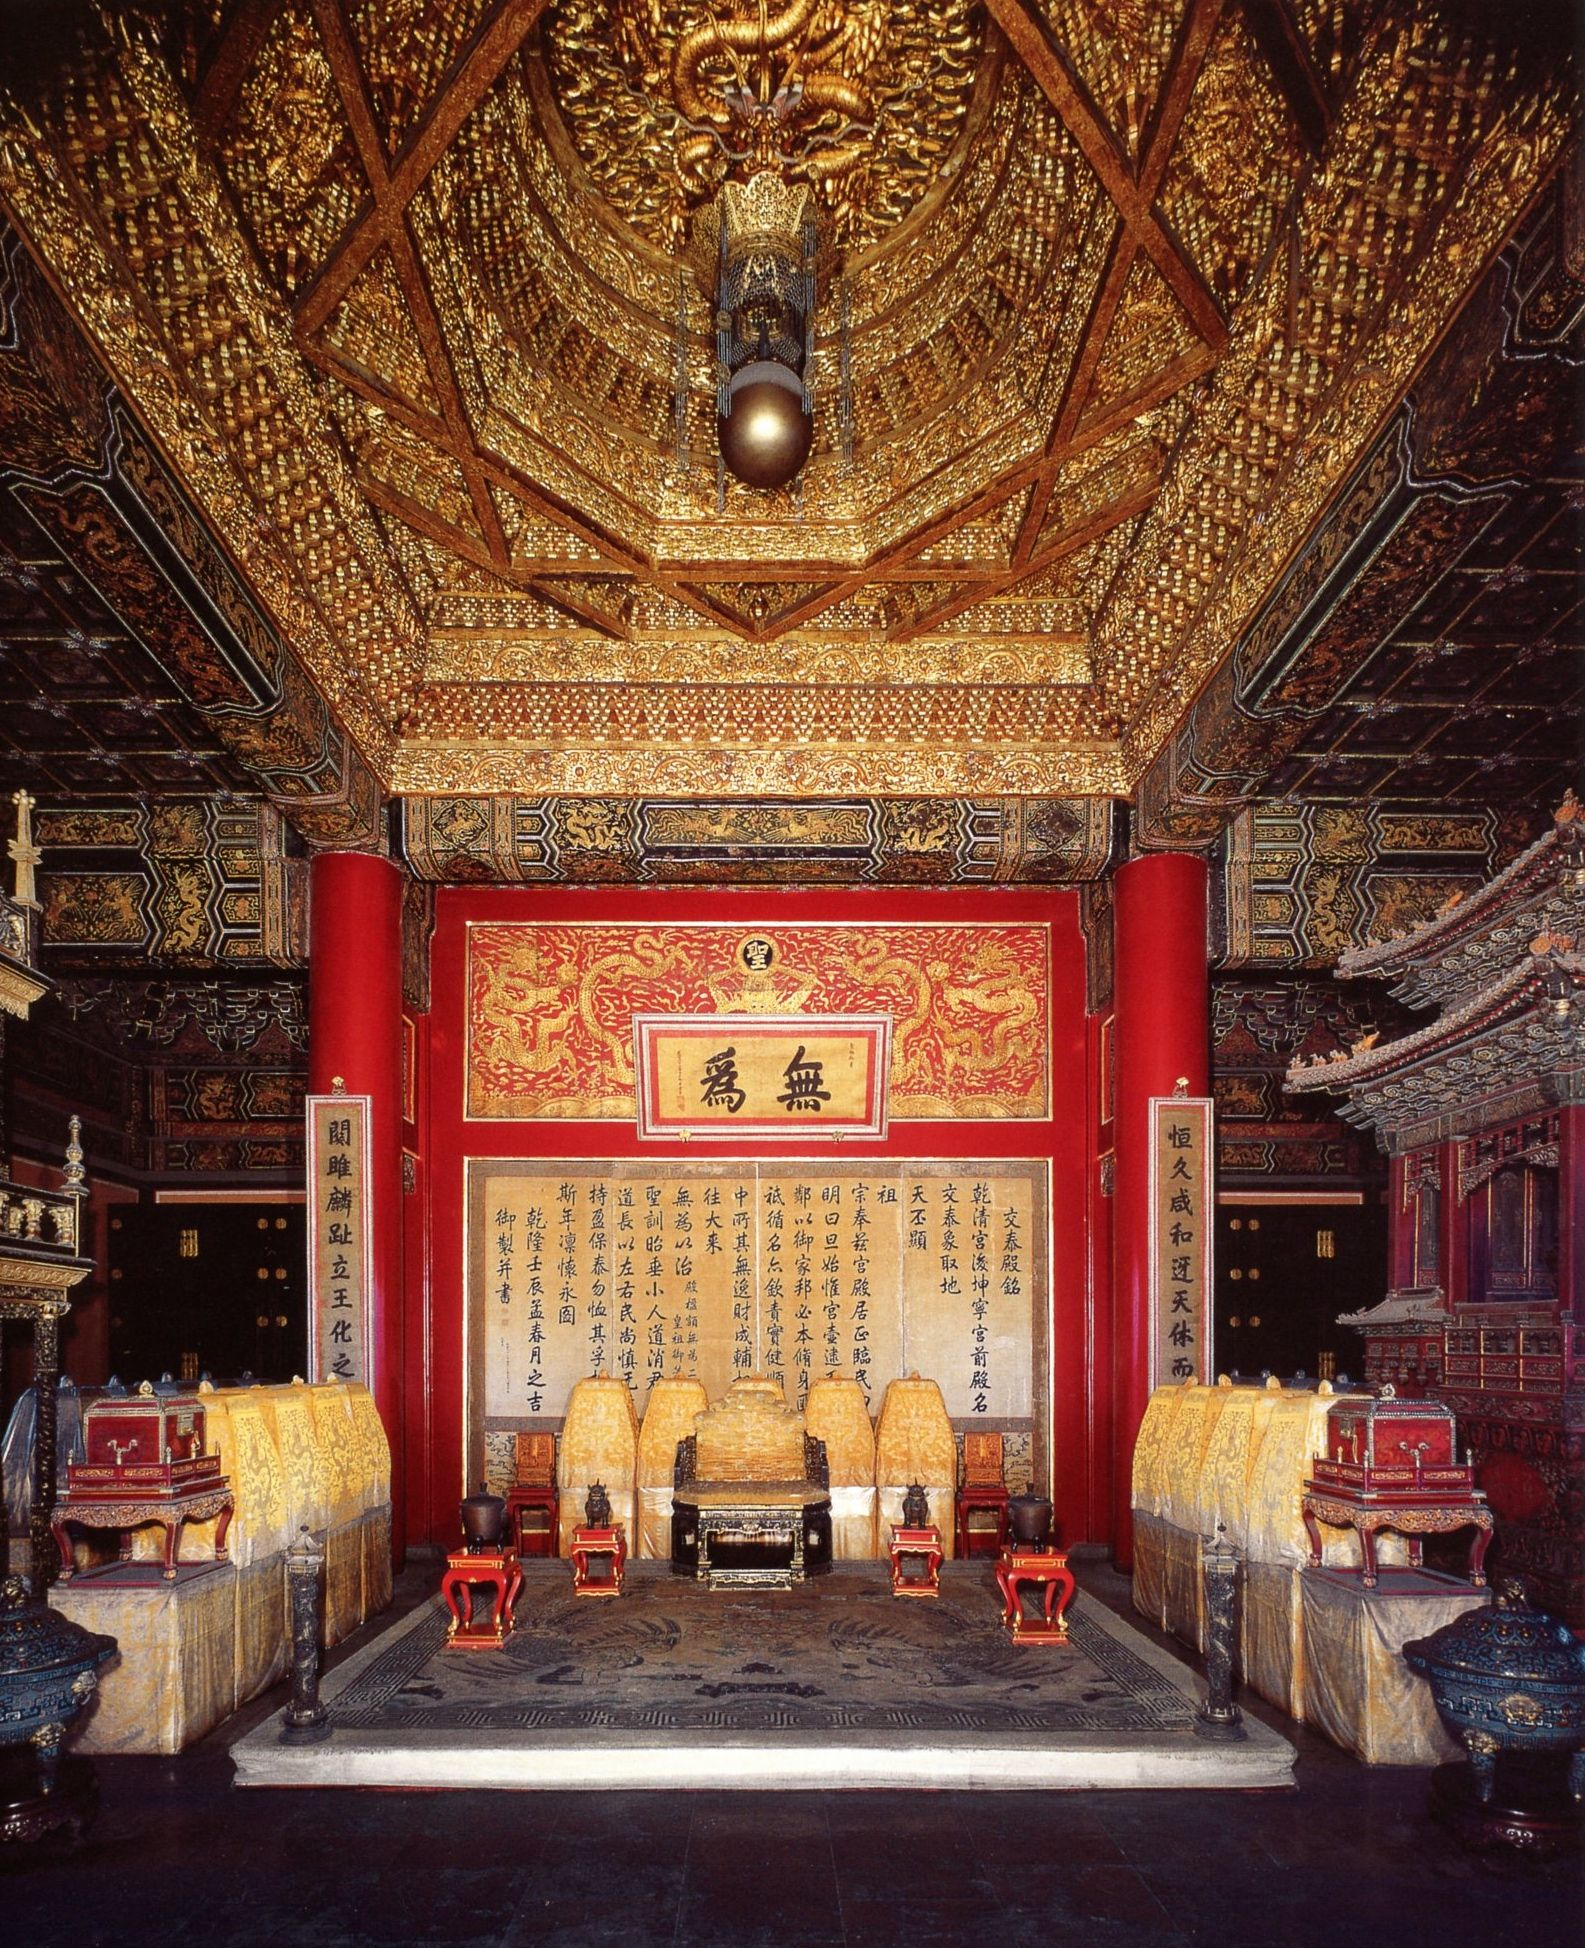 A Room For Royal Seals In The Forbidden City That Was Built By The Third Ming Emperor 600 Years Ago China Architecture Chinese Buildings Forbidden City